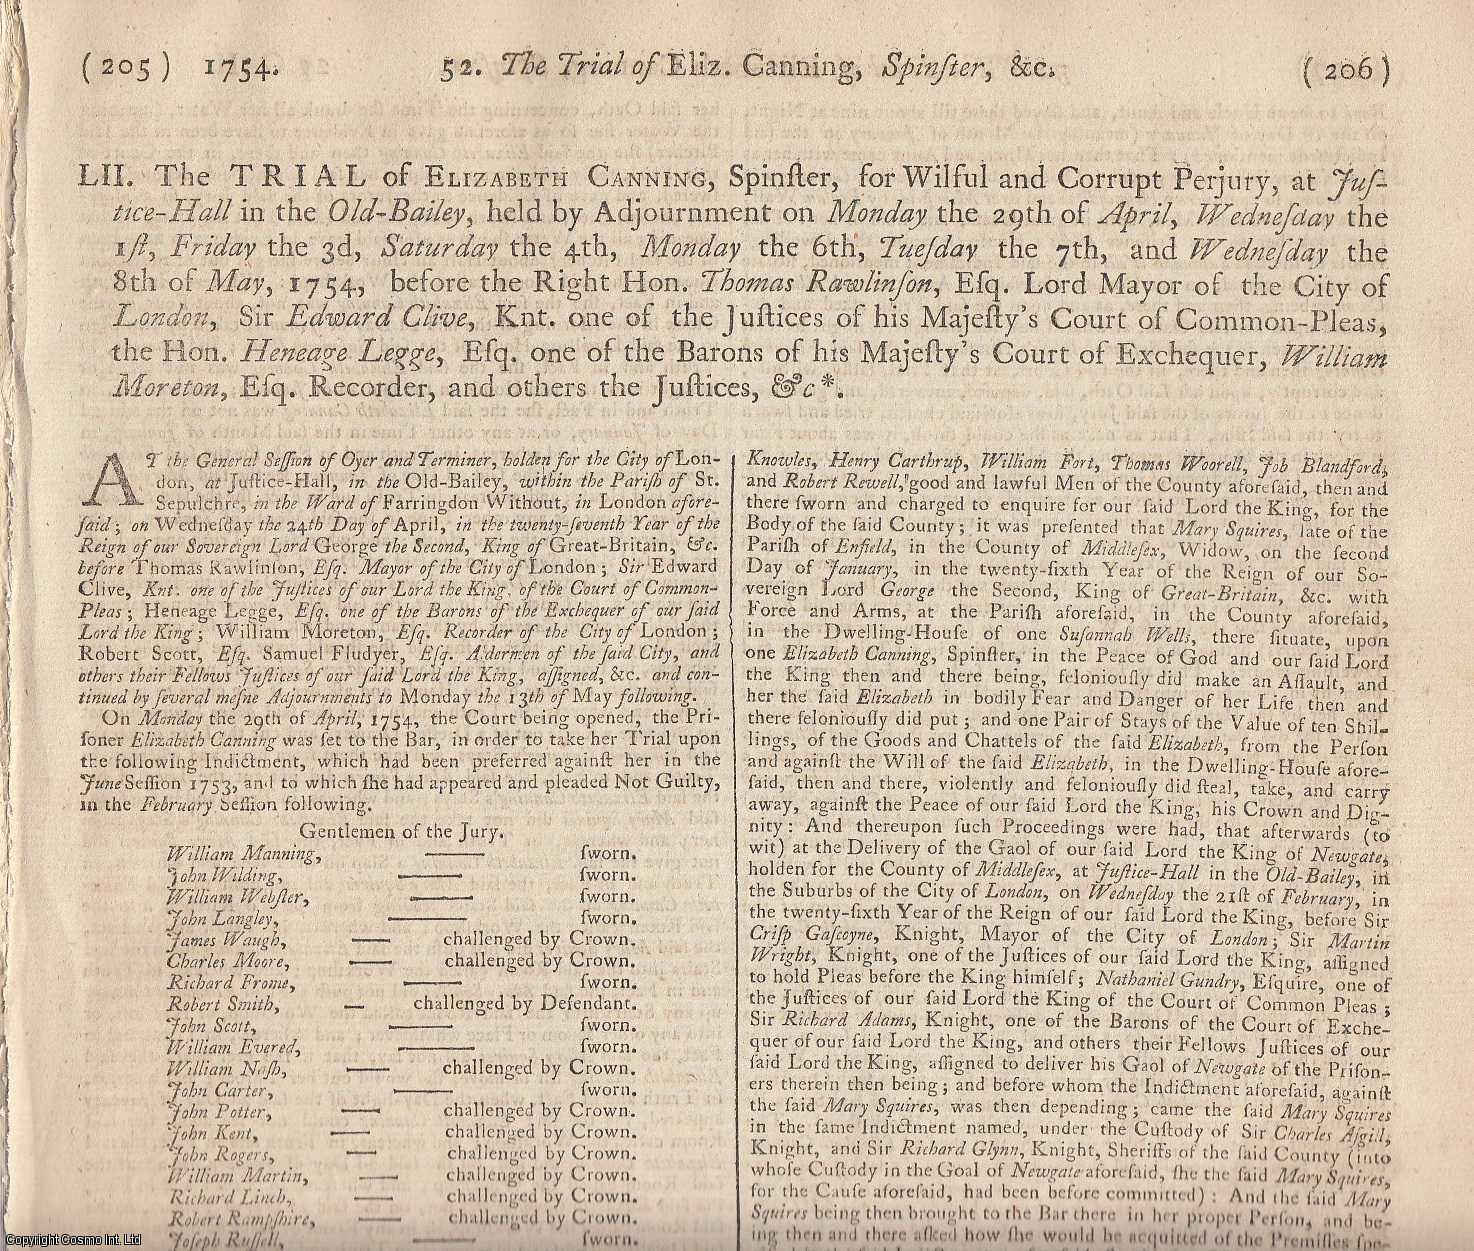 TRANSPORTED TO CONNECTICUT, AMERICA.  The Trial of Elizabeth Canning, Spinster, for Wilful and Corrupt Perjury, at Justice Hall in the Old Bailey, held By Adjournment? 1754. [The Case of Ashley and Simons the Jew]., [Trial].